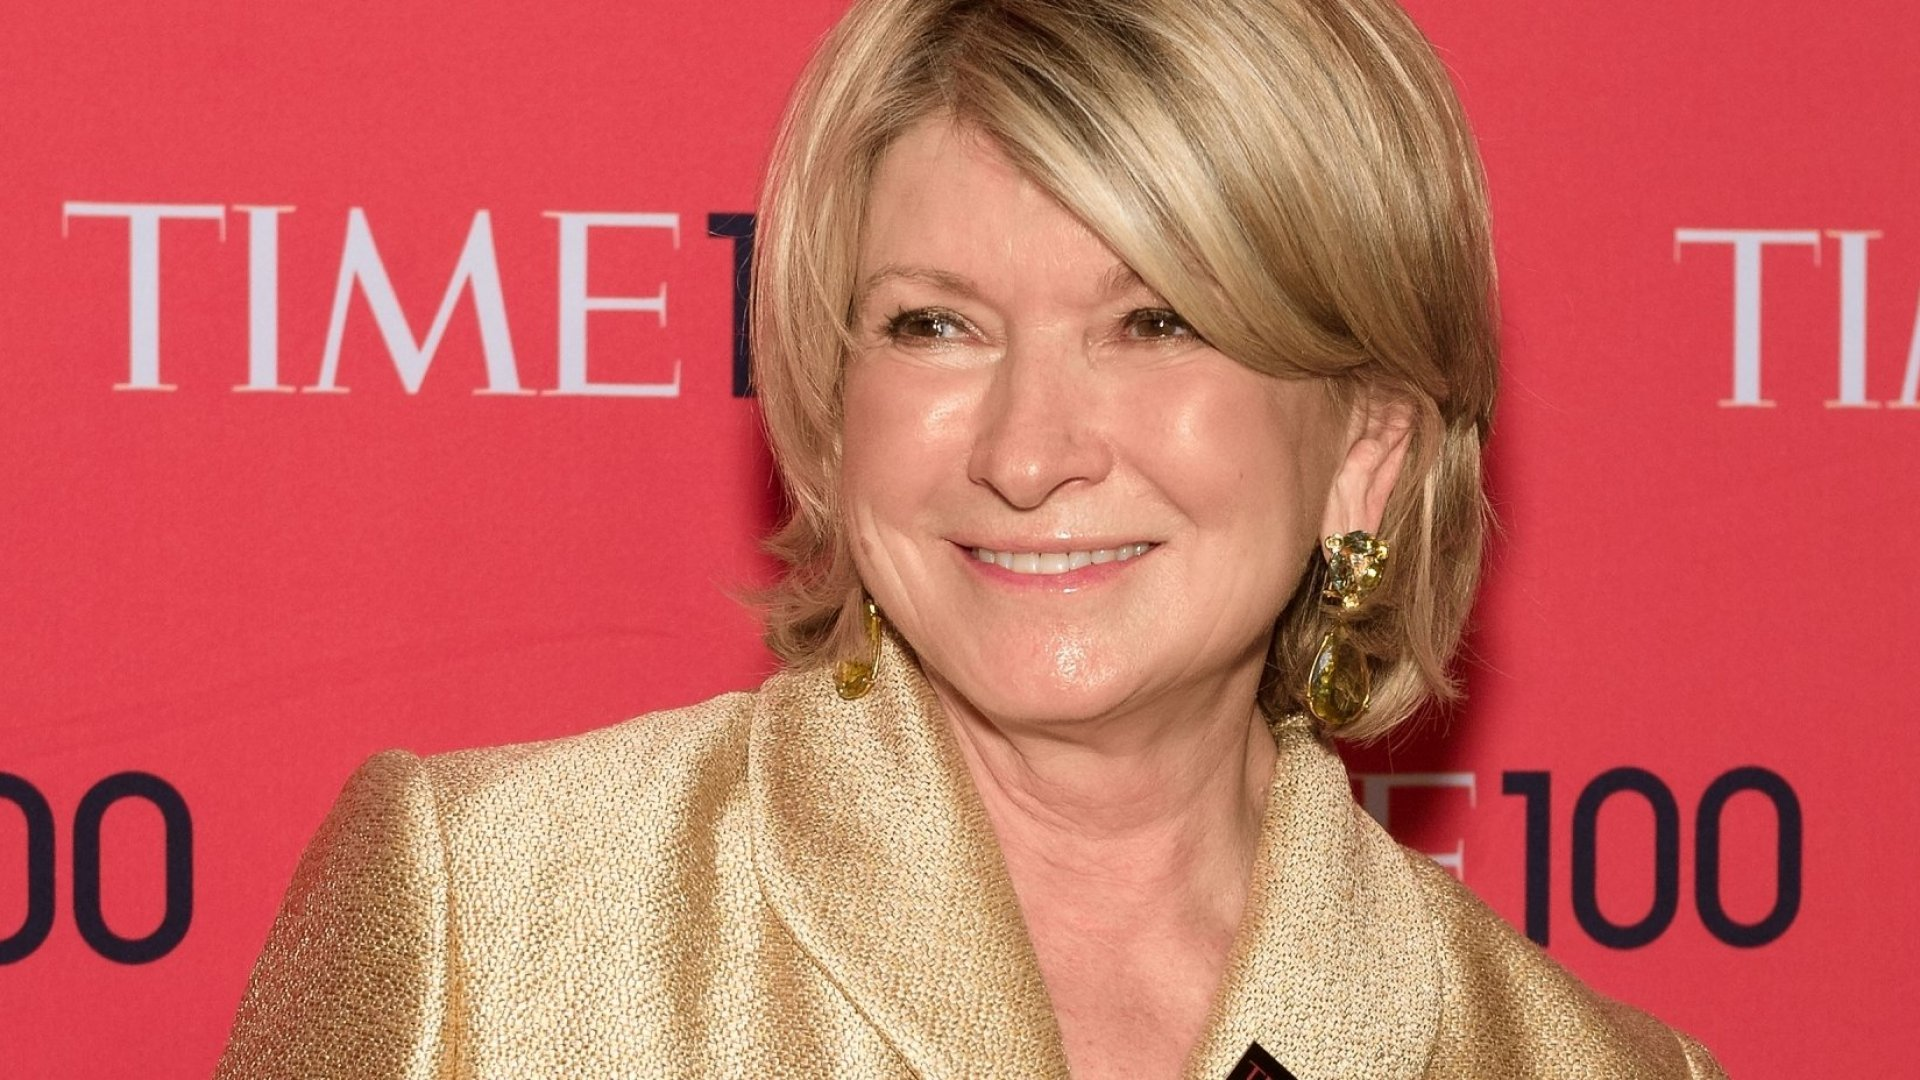 Top 5 Martha Stewart Quotes on How She Built Her Empire